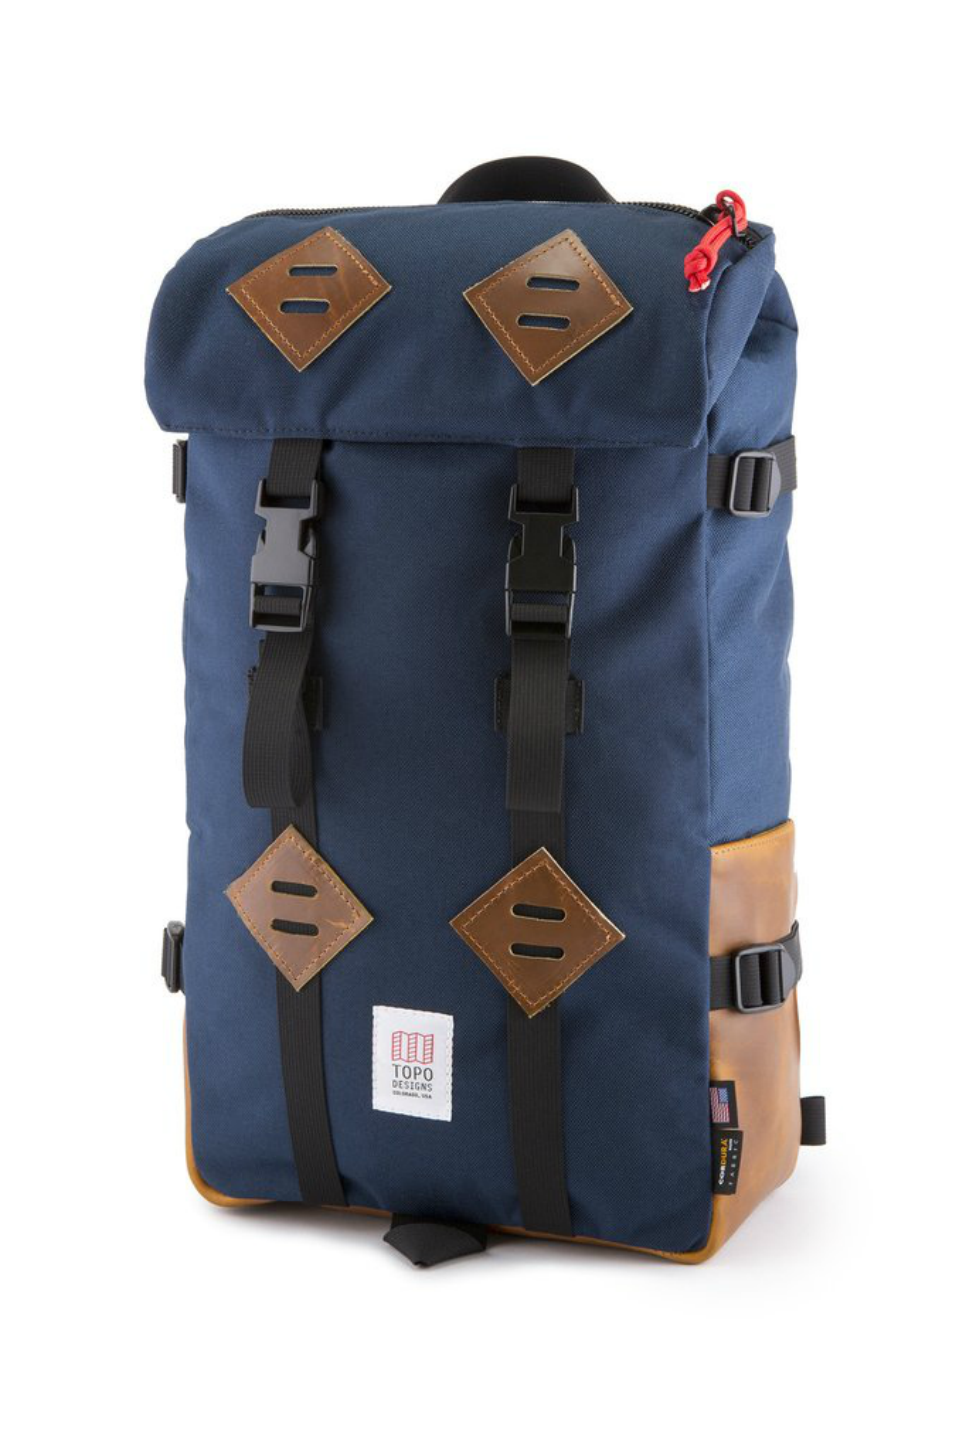 Topo Designs - Klettersack - Navy/Leather